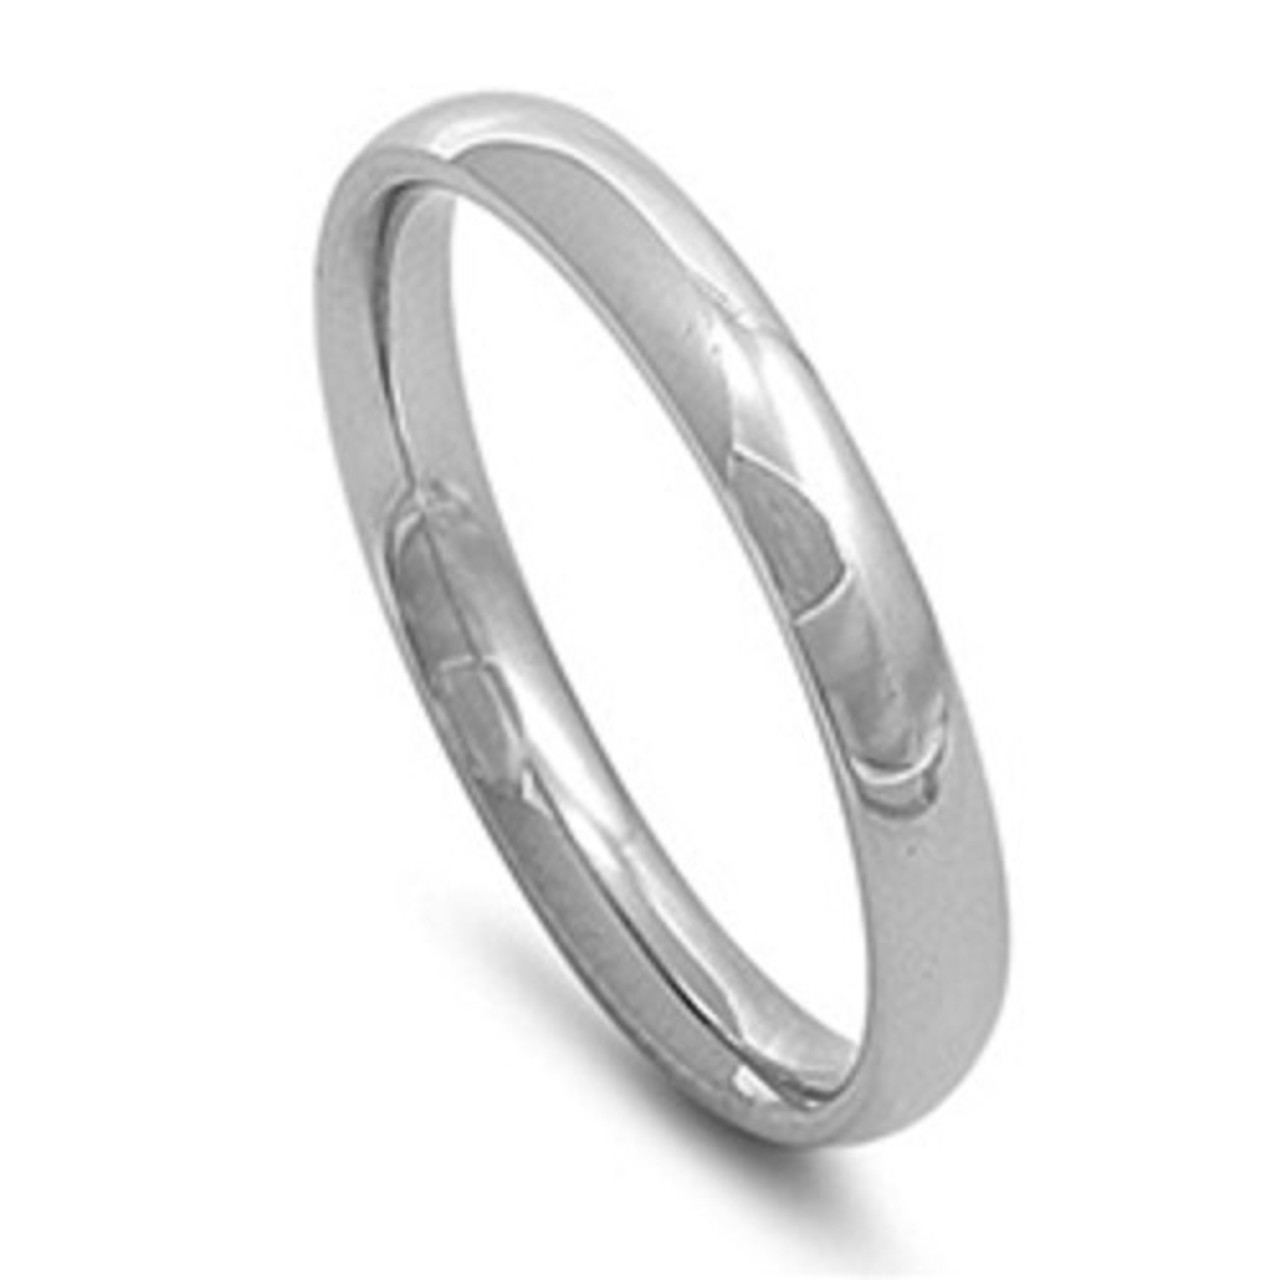 plain silver wedding bands. silver stainless steel plain comfort fit 3mm wedding band / ring bands t